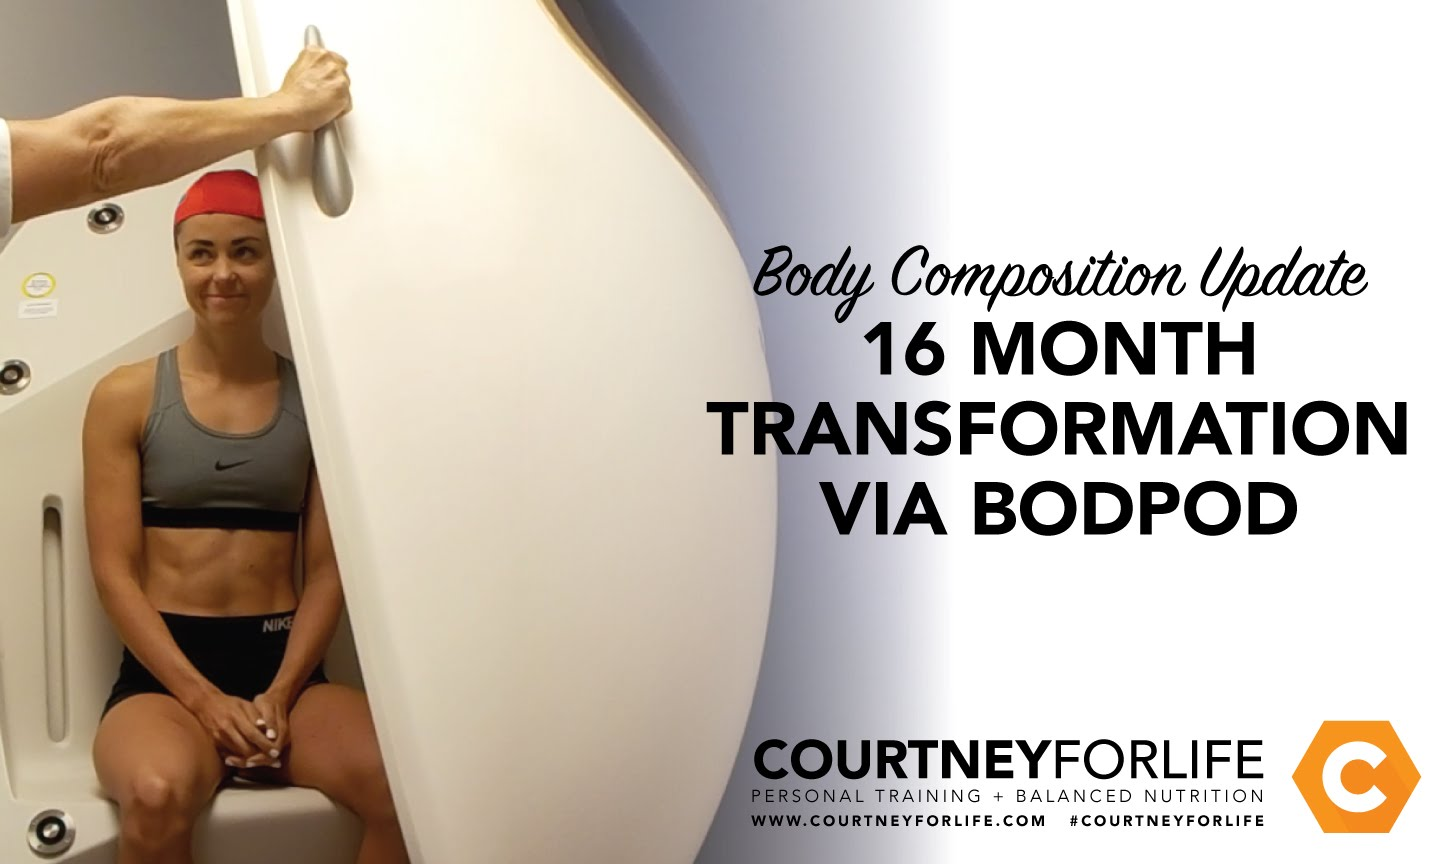 Body Composition Update Video